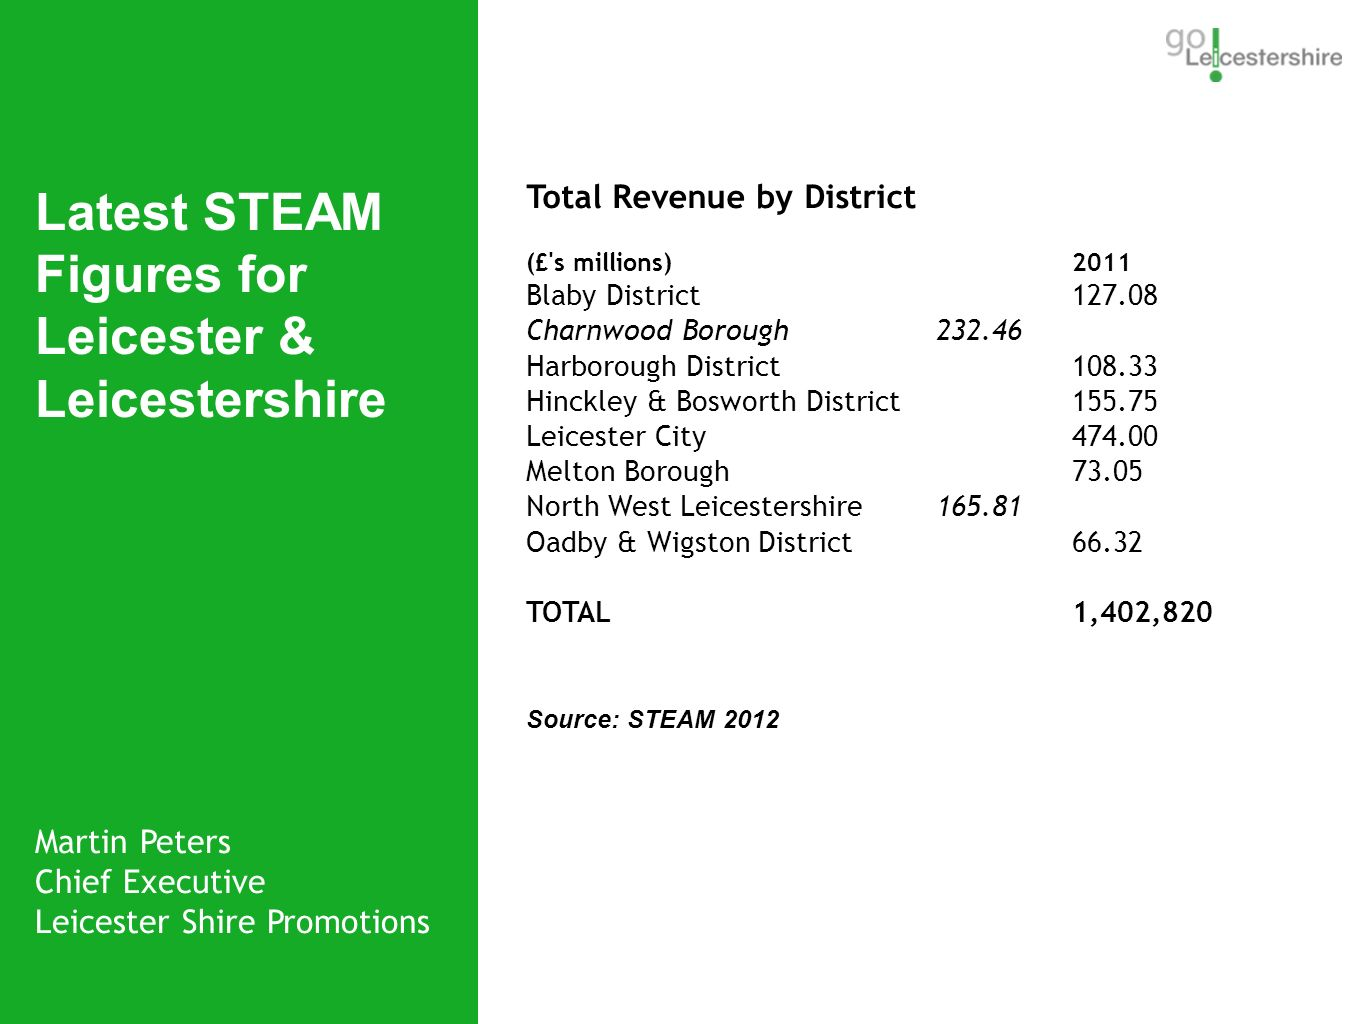 Martin Peters Chief Executive Leicester Shire Promotions Latest STEAM Figures for Leicester & Leicestershire Bradgate Park Total Revenue by District (£ s millions) 2011 Blaby District 127.08 Charnwood Borough 232.46 Harborough District 108.33 Hinckley & Bosworth District 155.75 Leicester City 474.00 Melton Borough 73.05 North West Leicestershire 165.81 Oadby & Wigston District 66.32 TOTAL 1,402,820 Source: STEAM 2012